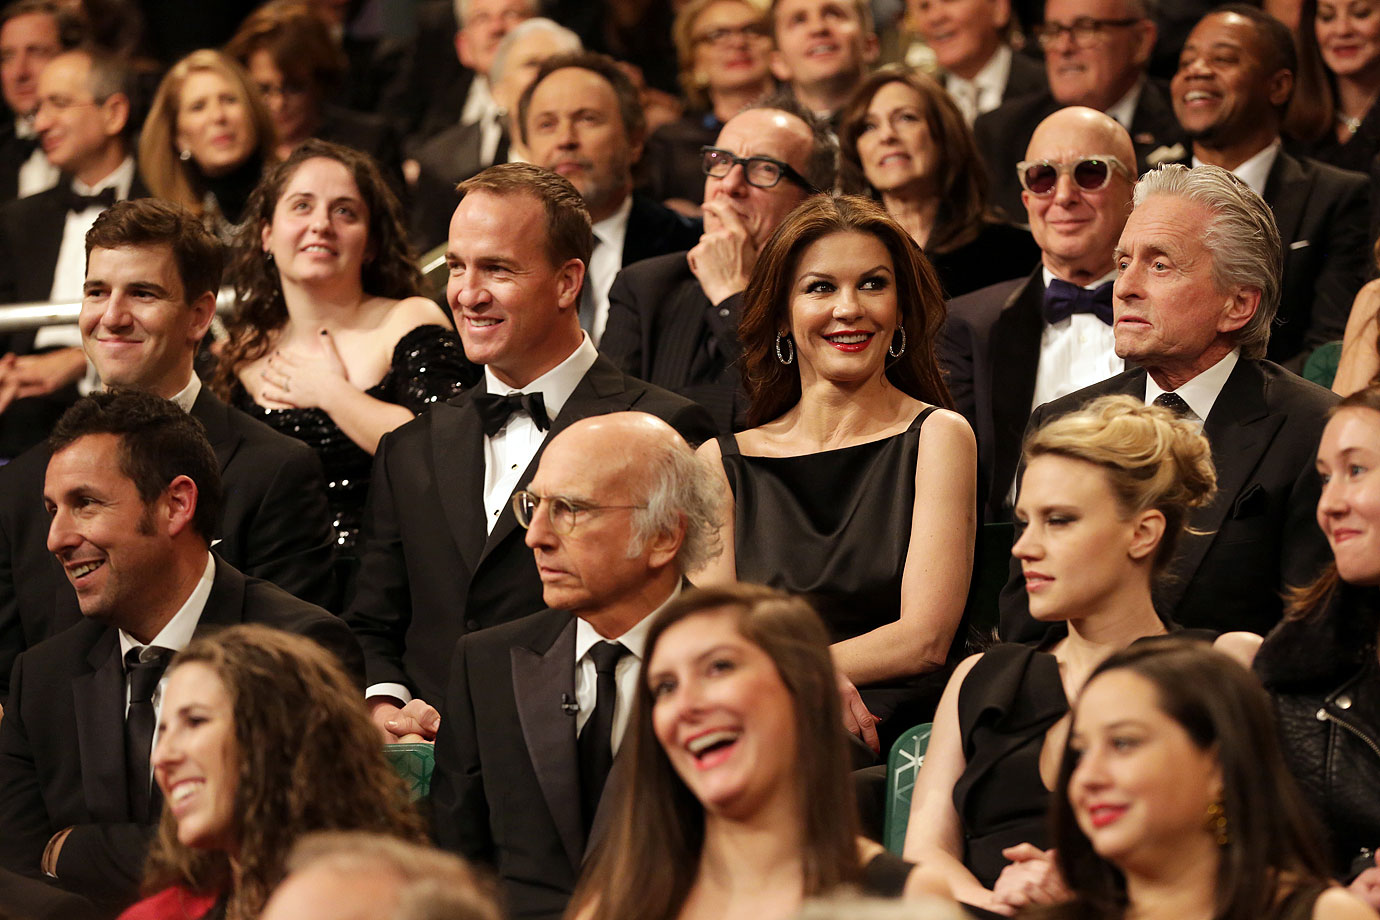 Eli and Peyton Manning smile alongside Catherine Zeta-Jones and Michael Douglas during the SNL 40th Anniversary Special's Audience Q&A in New York City.